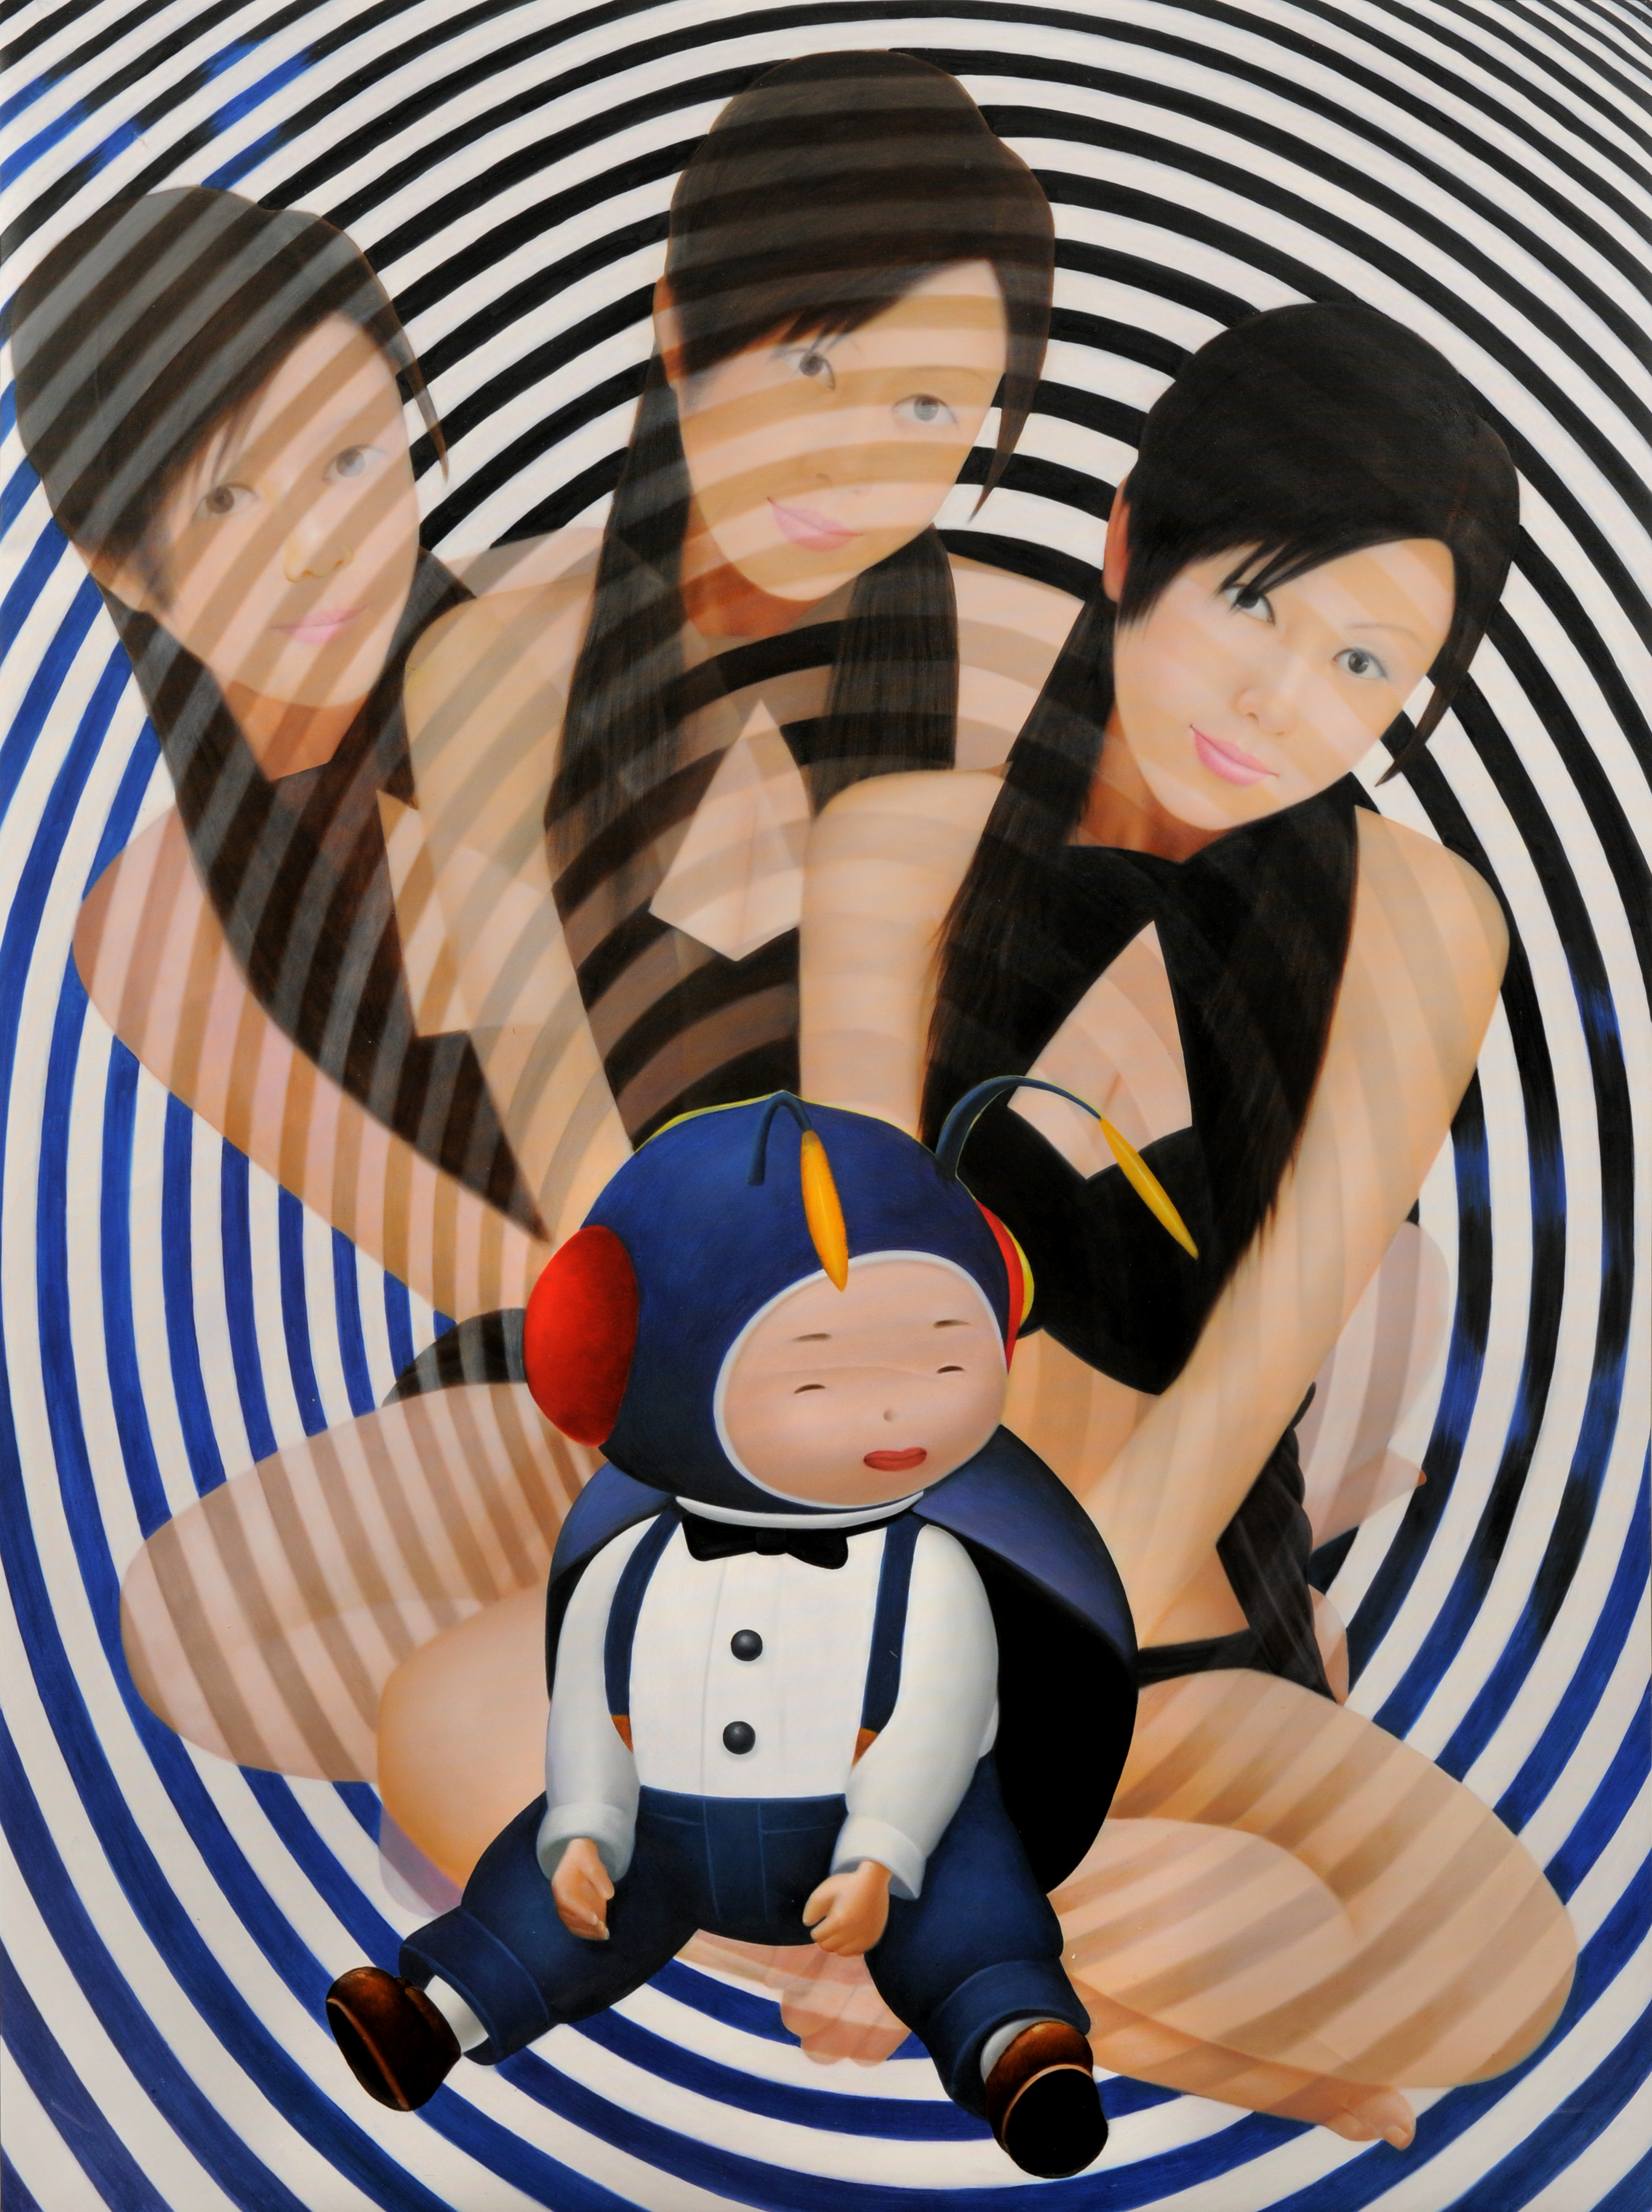 """BLACKCIRCLES"" Oil on Canvas, 2009 70 9/10 × 53 1/10 in 180 × 135 cm"